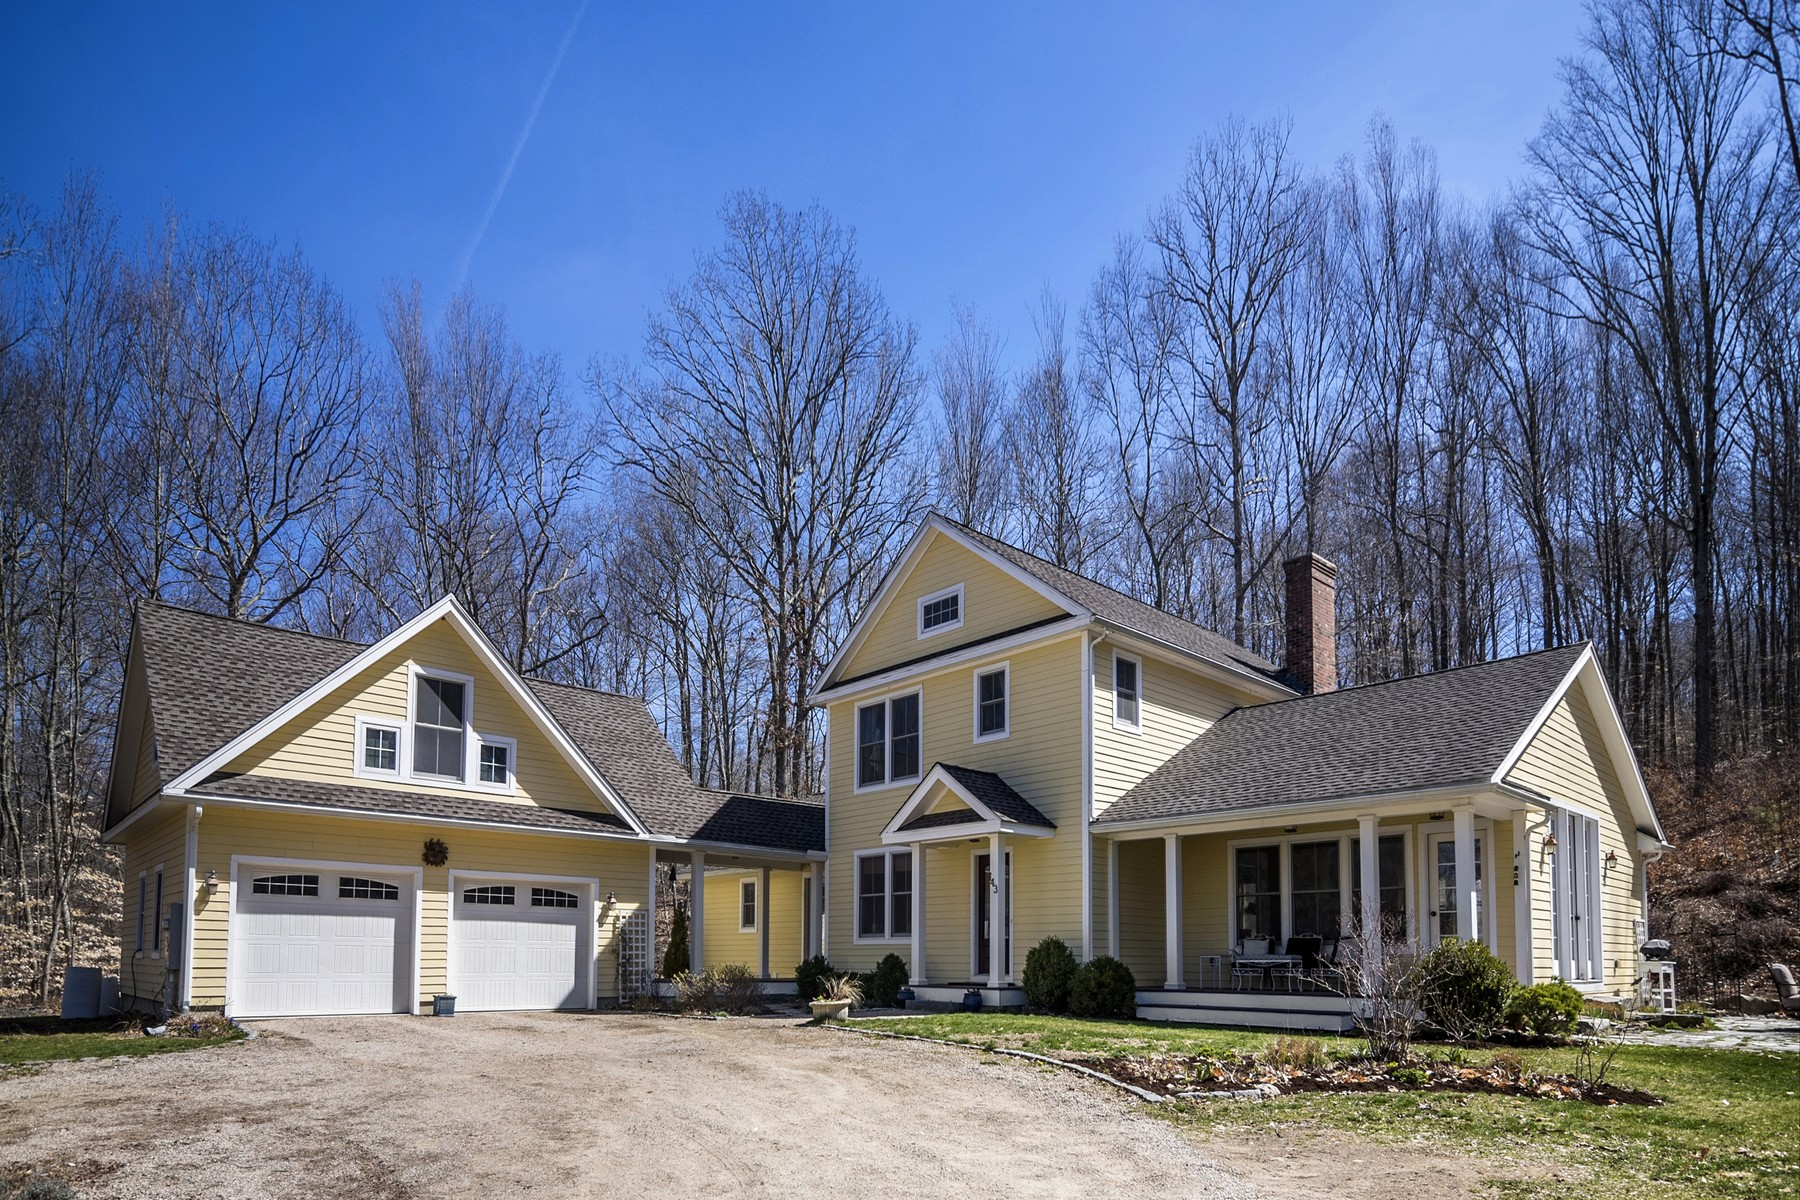 Single Family Home for Sale at Energy Star rated with a perfect layout 143 Beaver Brook Rd Lyme, Connecticut, 06371 United States